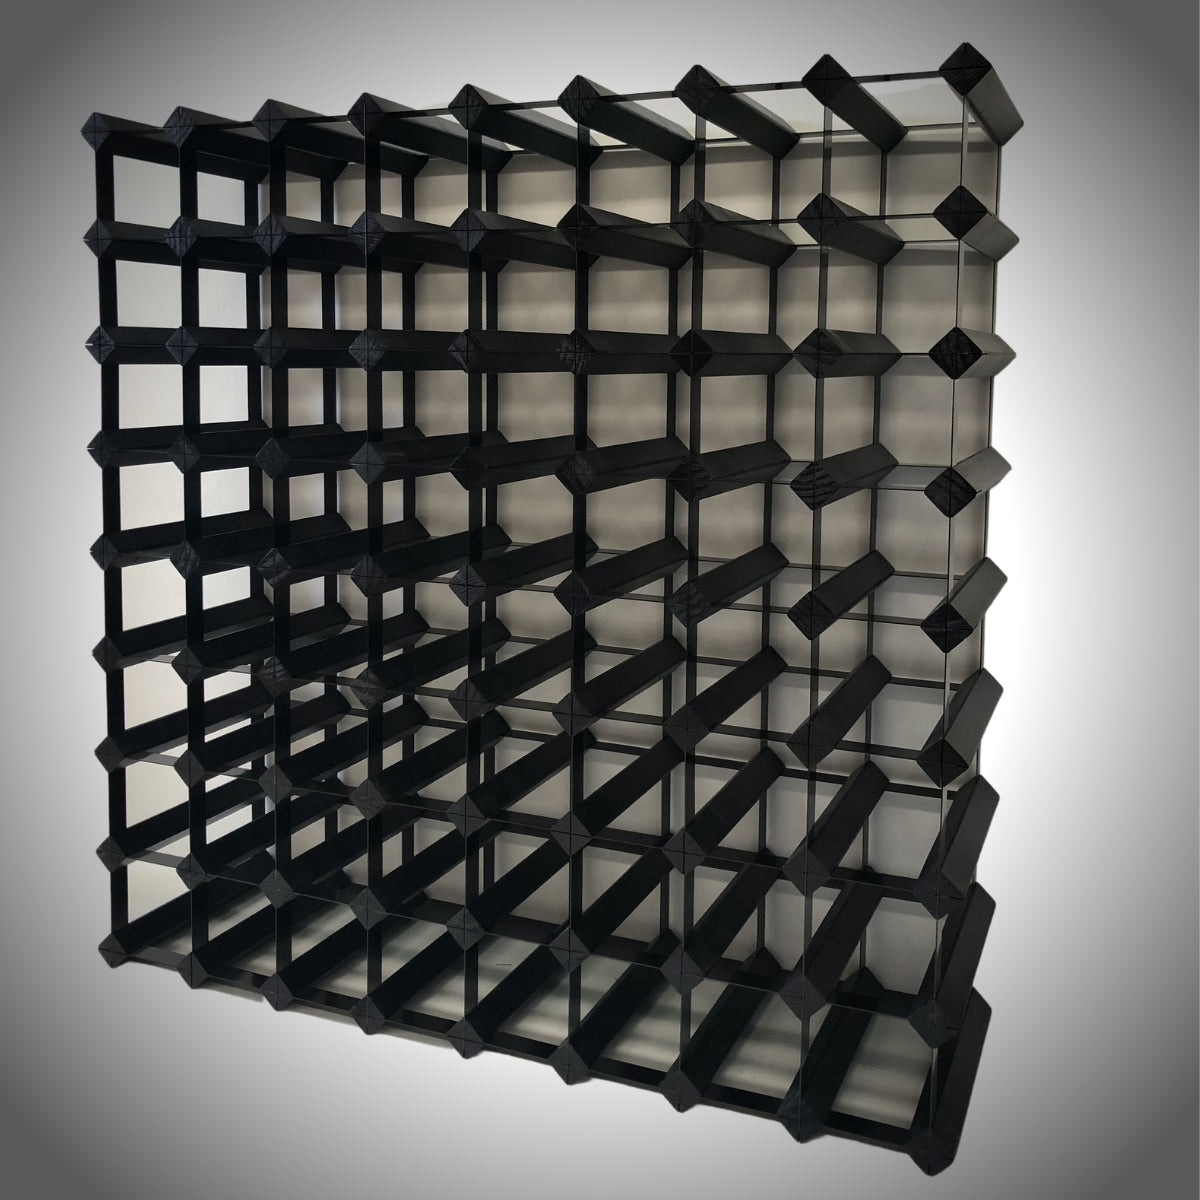 72 Bottle Timber Wine Rack | 8x8 Configuration